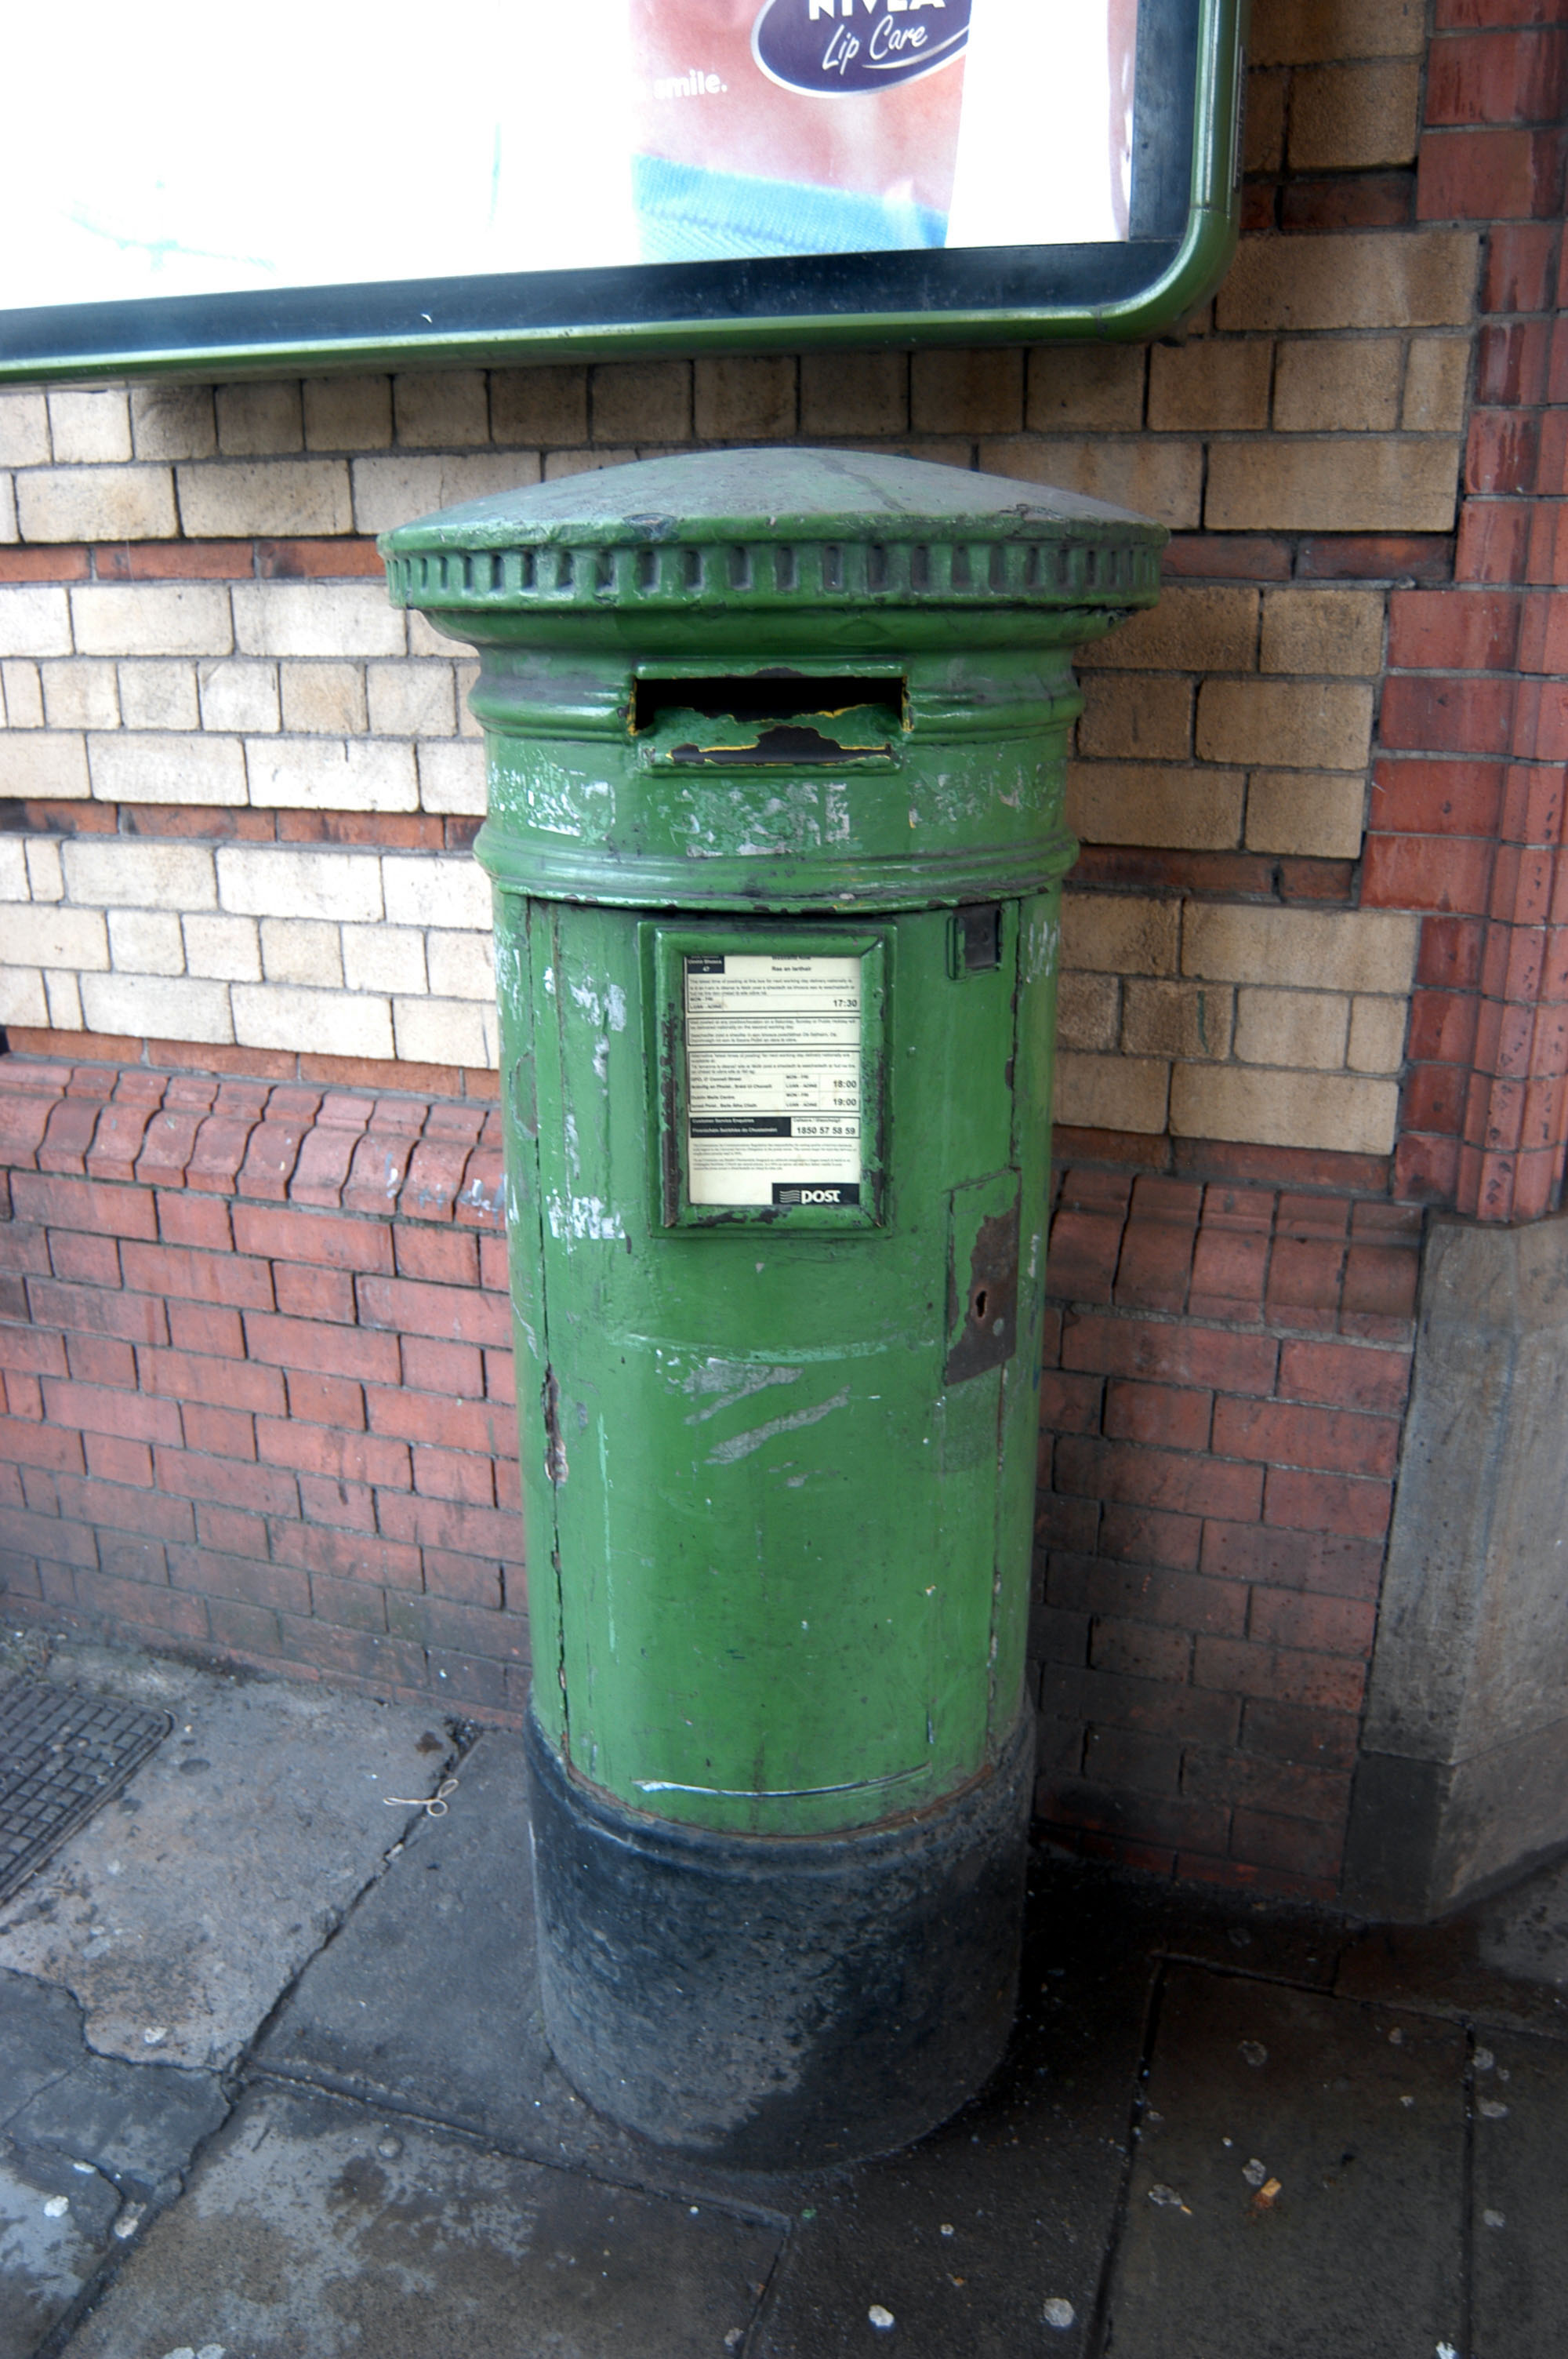 Green Pillar Box. Dublin, 2005.